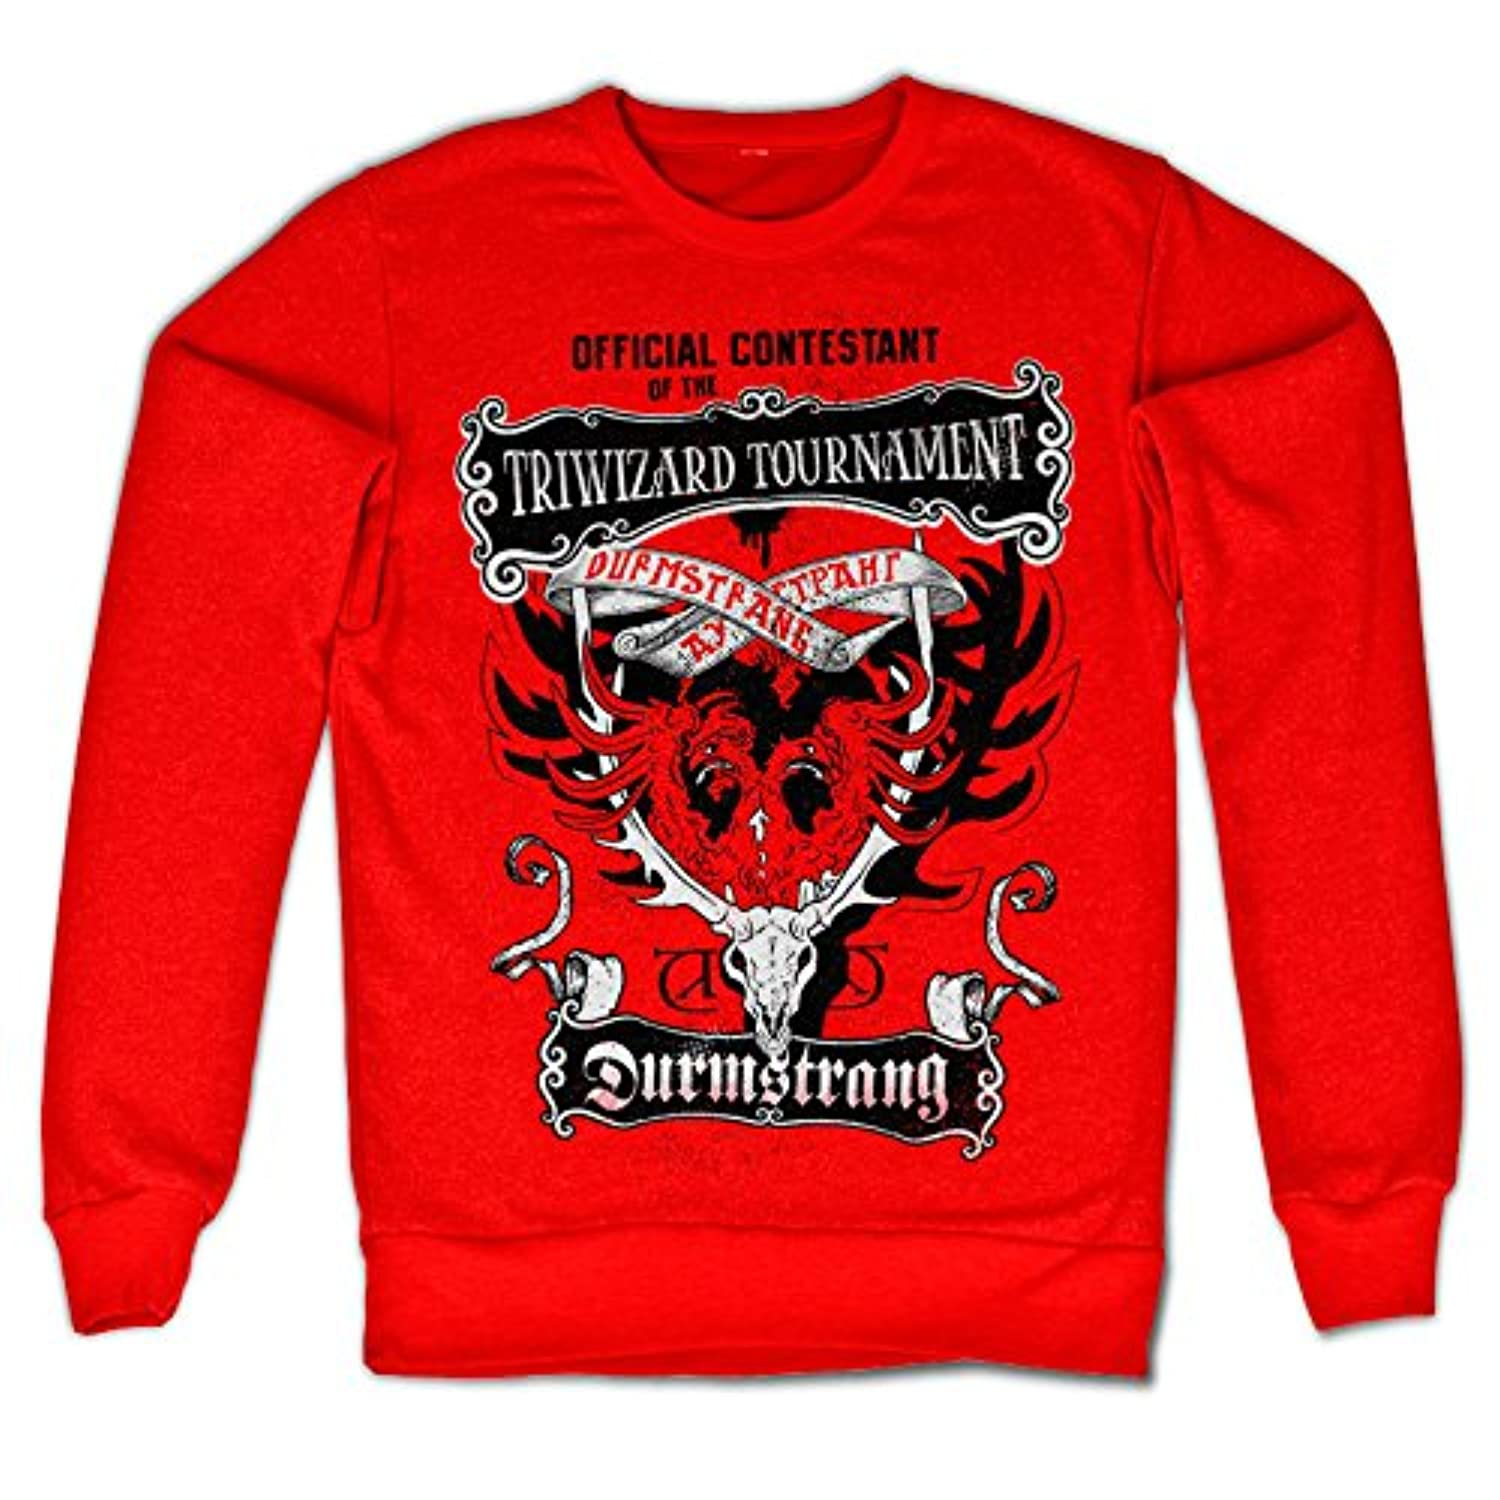 Officially Licensed Inked Harry Potter - Triwizard Tournament Sweatshirt (Red)